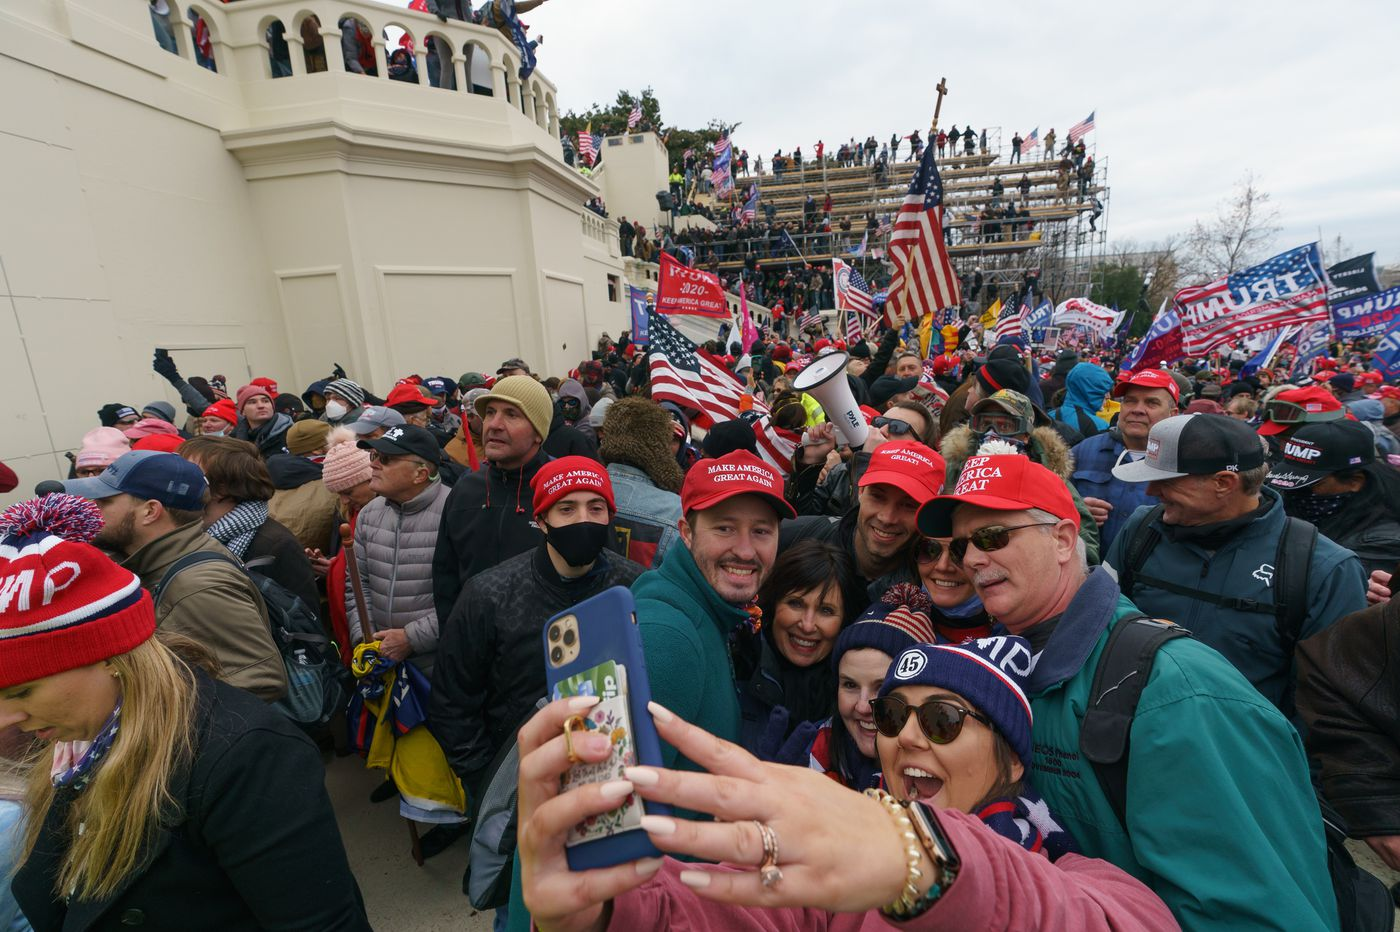 Internet detectives are identifying scores of pro-Trump rioters at the Capitol. Some have already been fired.